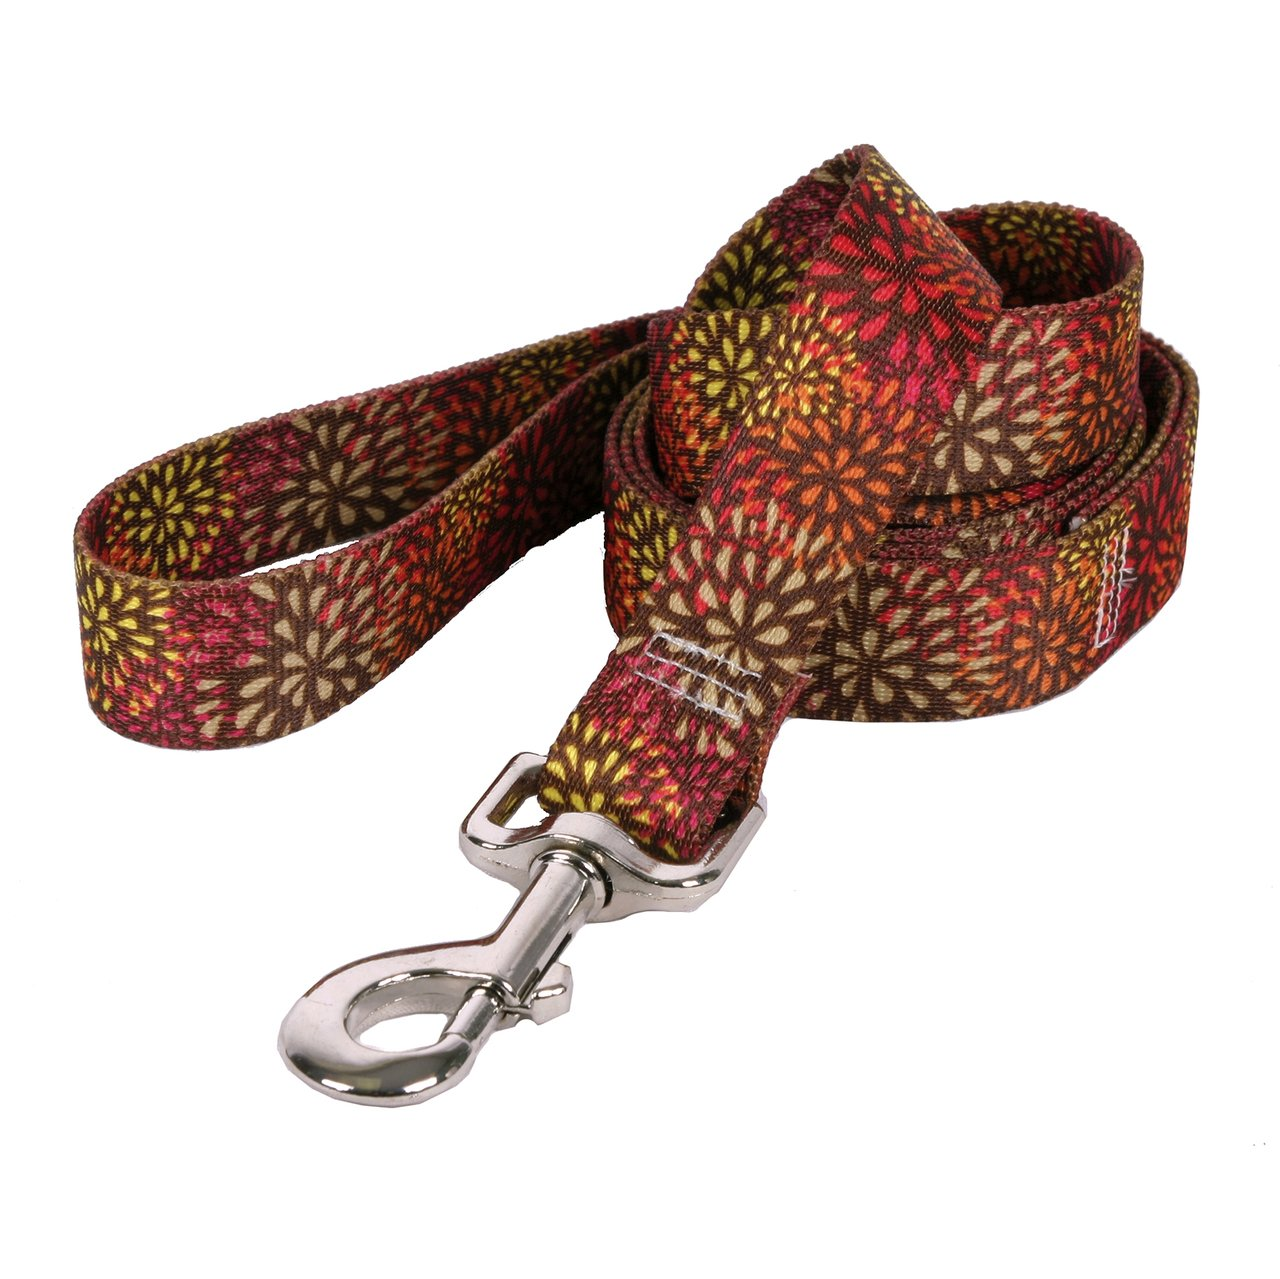 Yellow Dog Design Flower Works Red Dog Leash 3/4'' Wide and 5' (60'') Long, Small/Medium